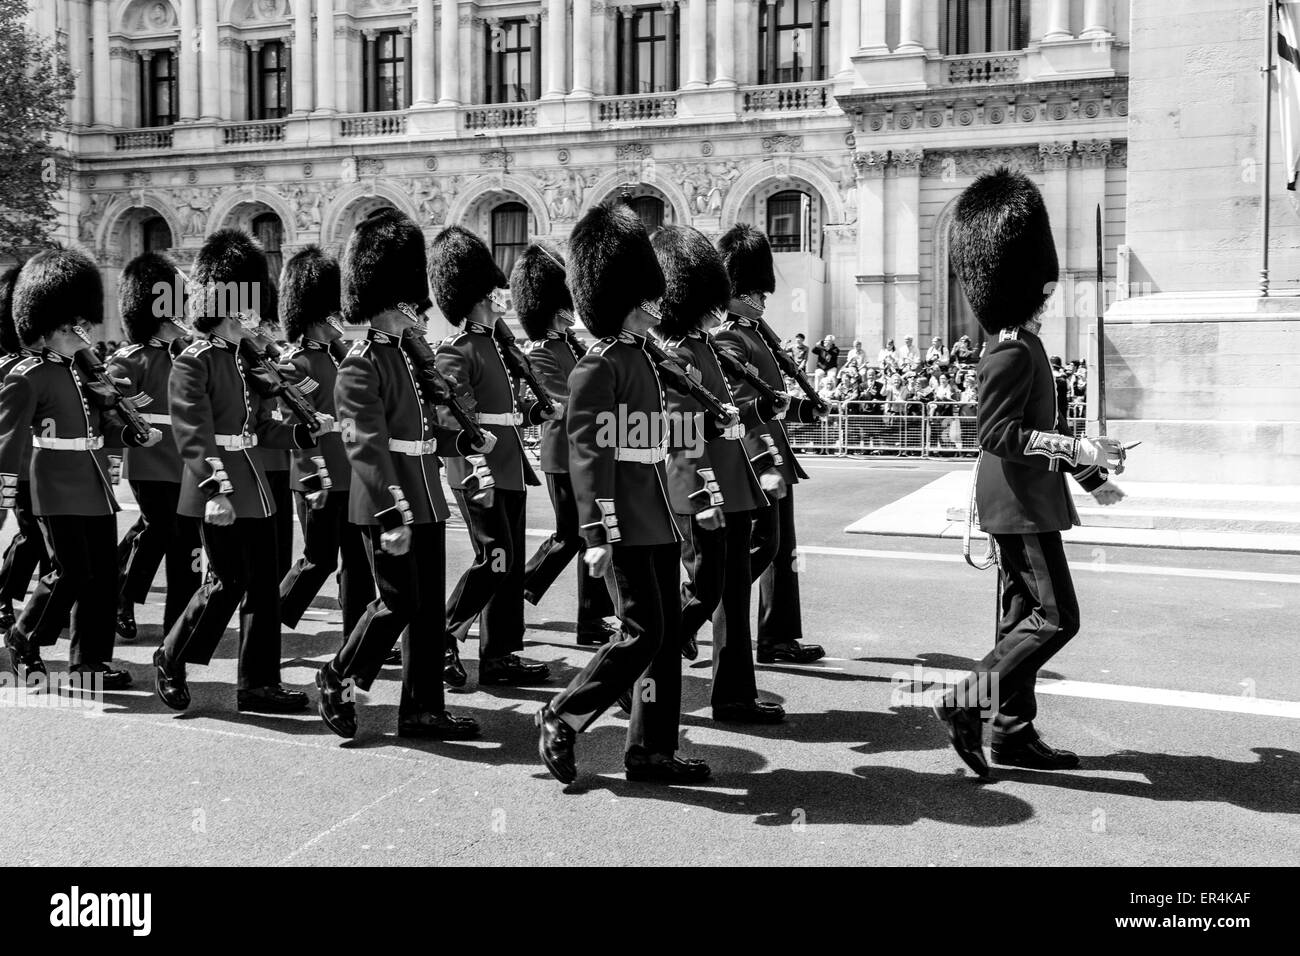 The Scots Guards March Past The Cenotaph War Memorial As Part Of The 70th Anniversary Celebrations of VE Day, London, - Stock Image